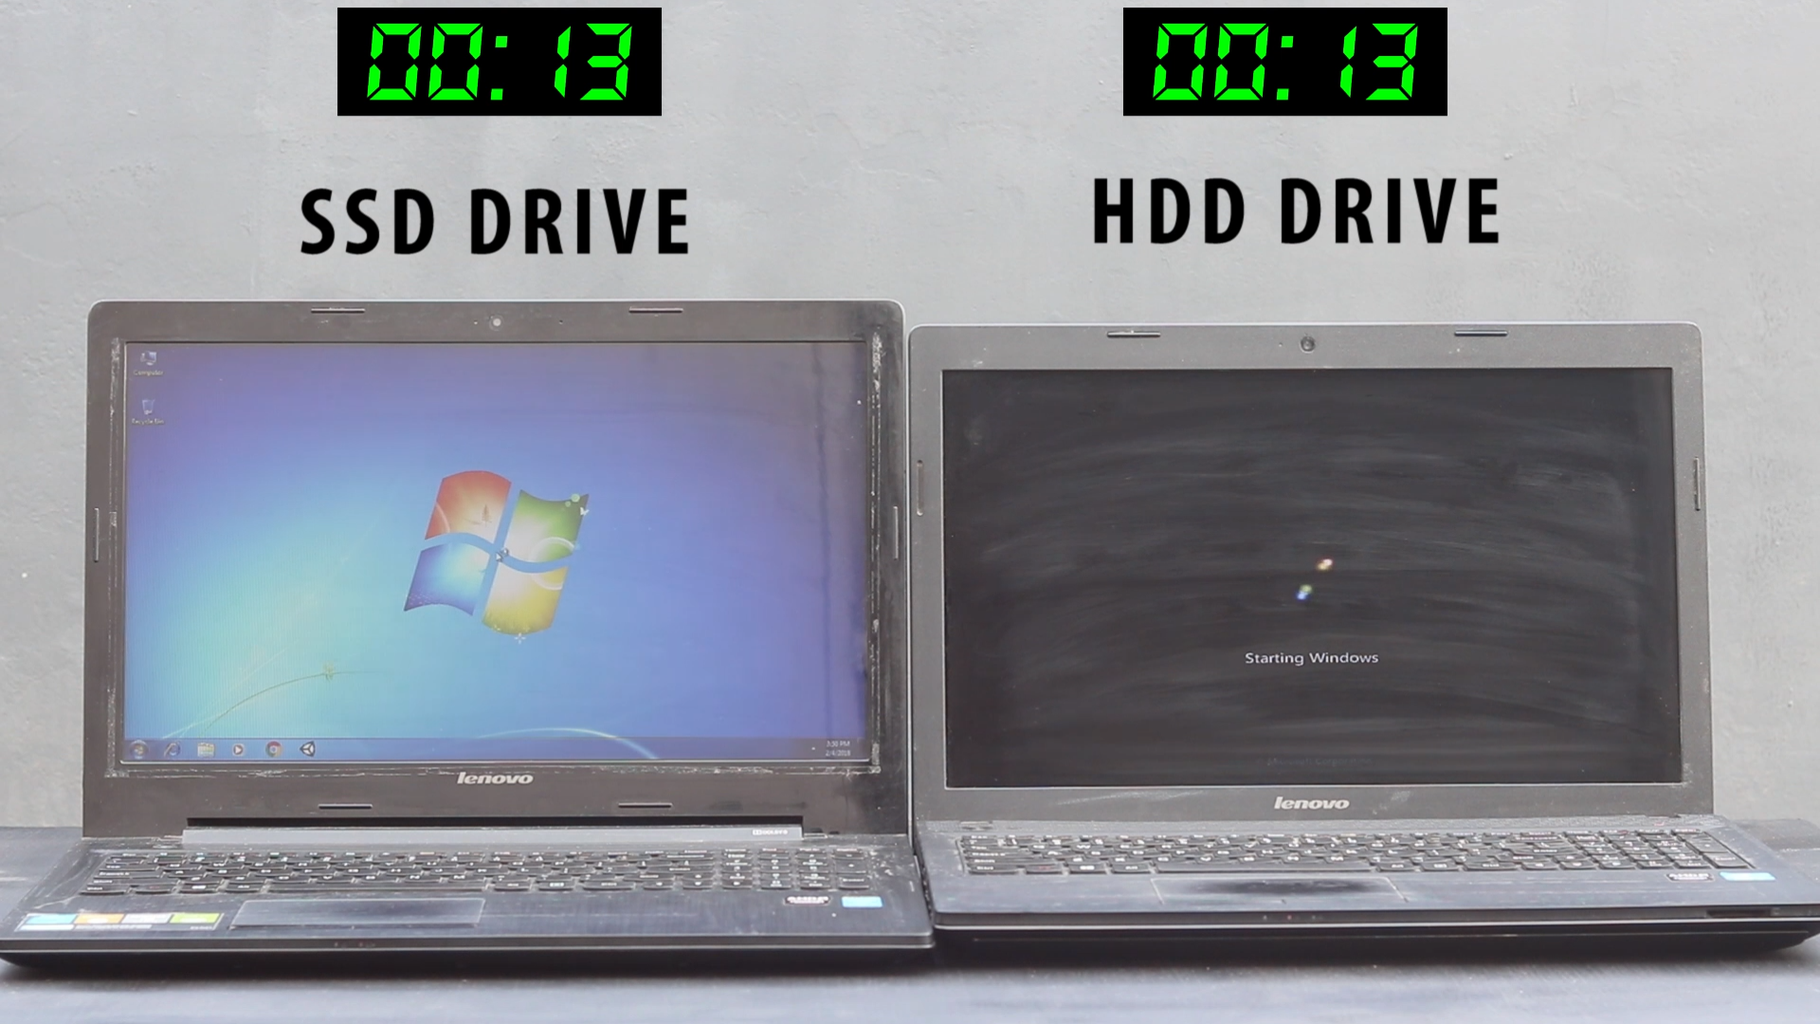 Test Speed of SSD and HDD.